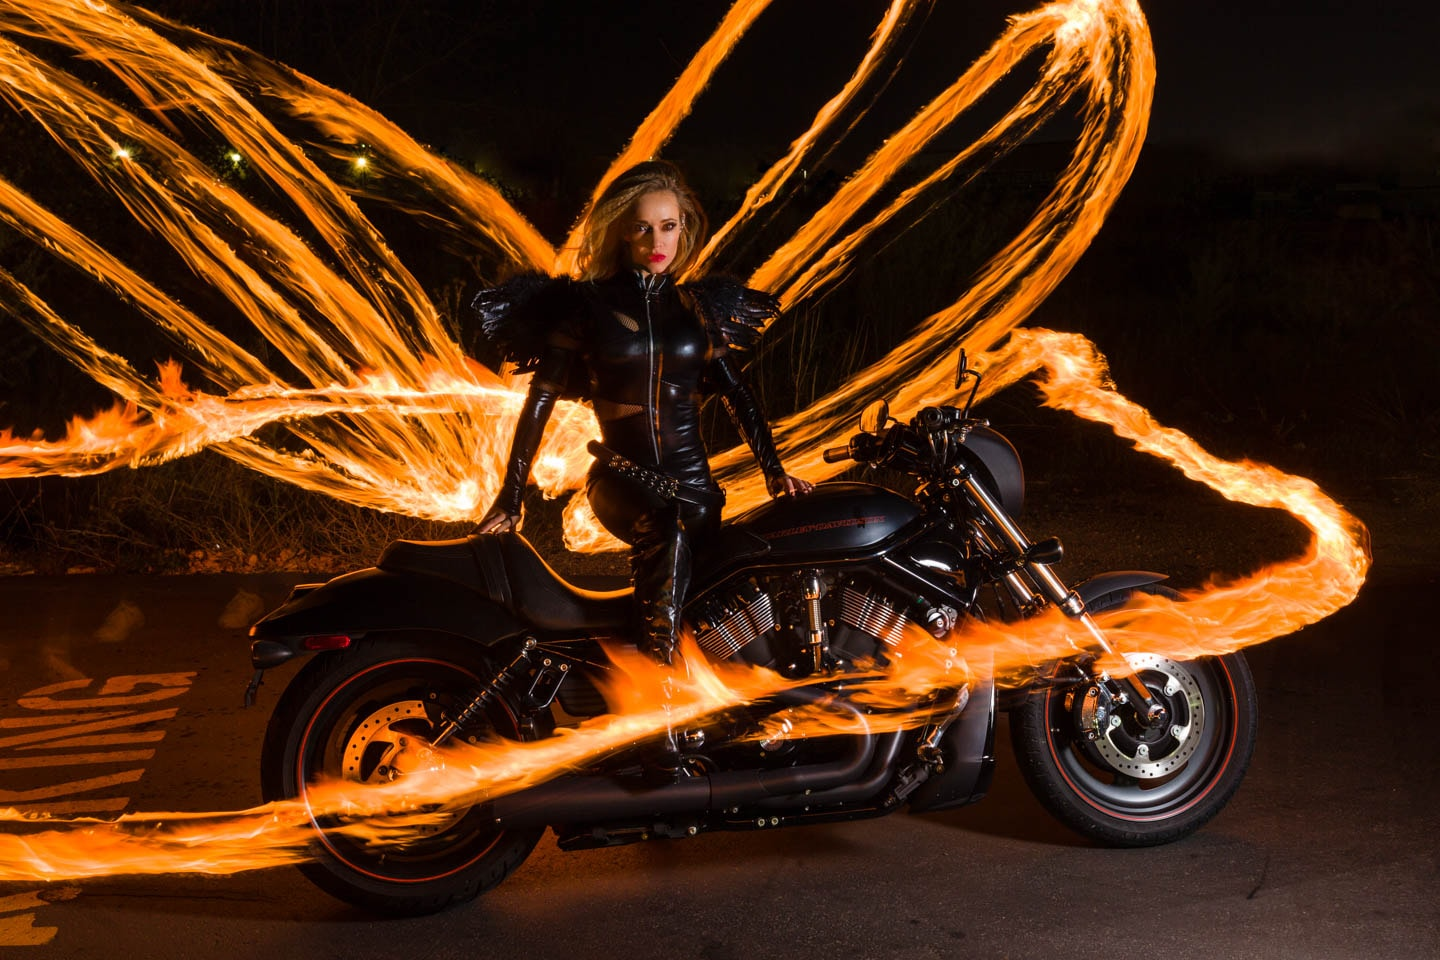 a hot girl on a motorcycle surrounded by flame